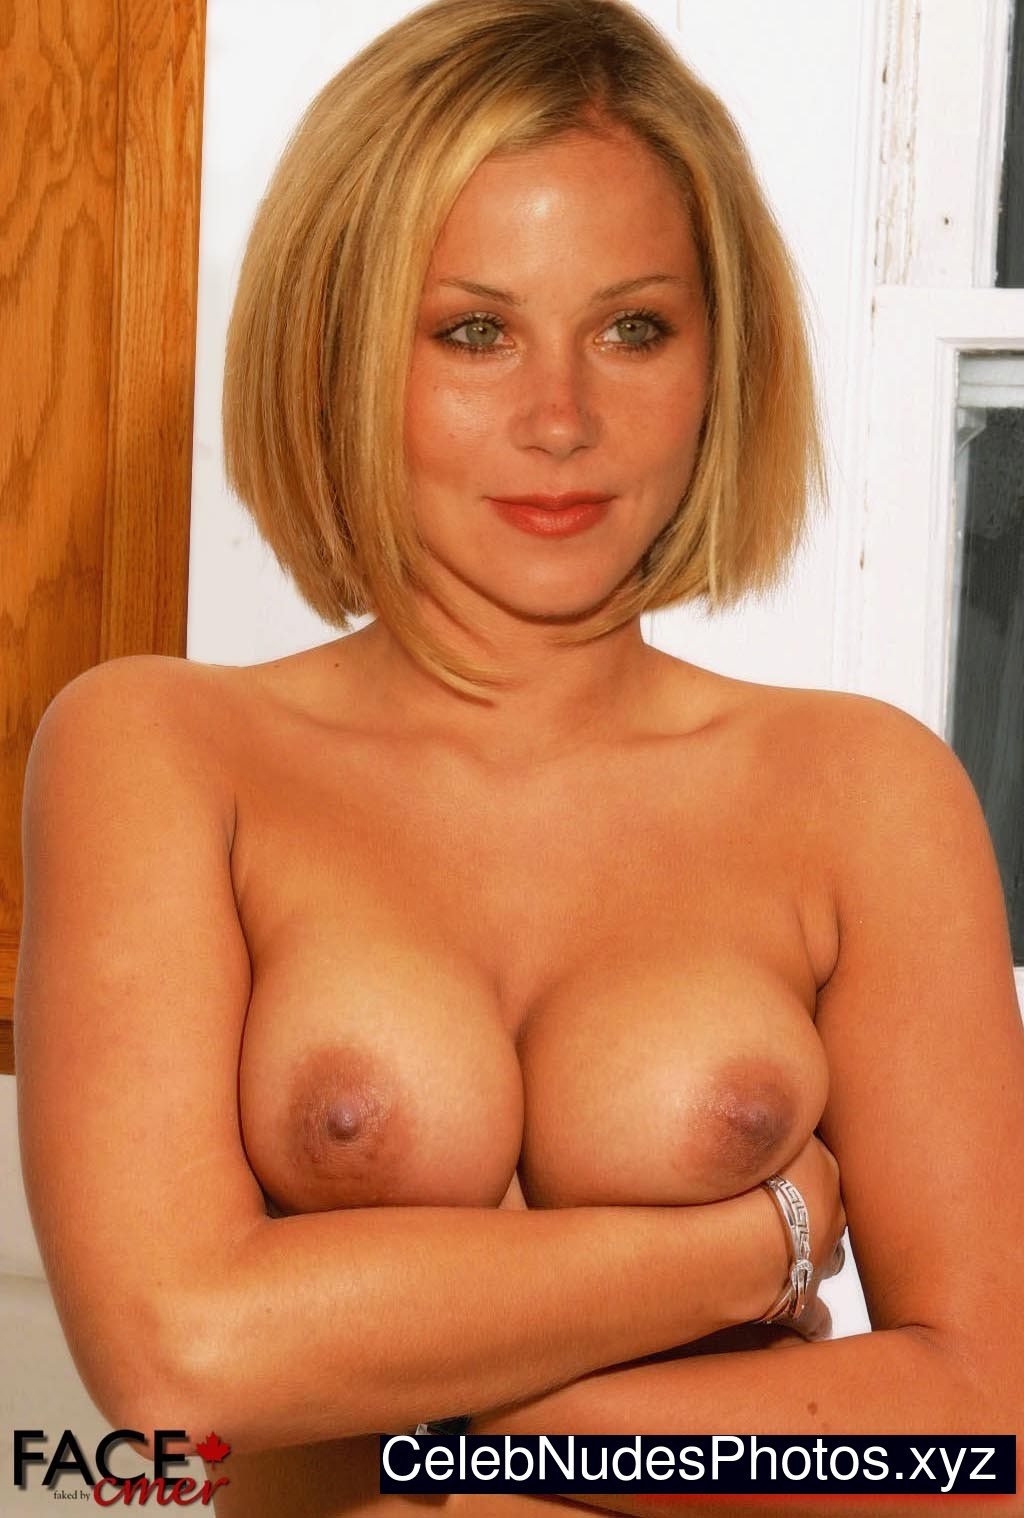 Christina Applegate free nude celebrities